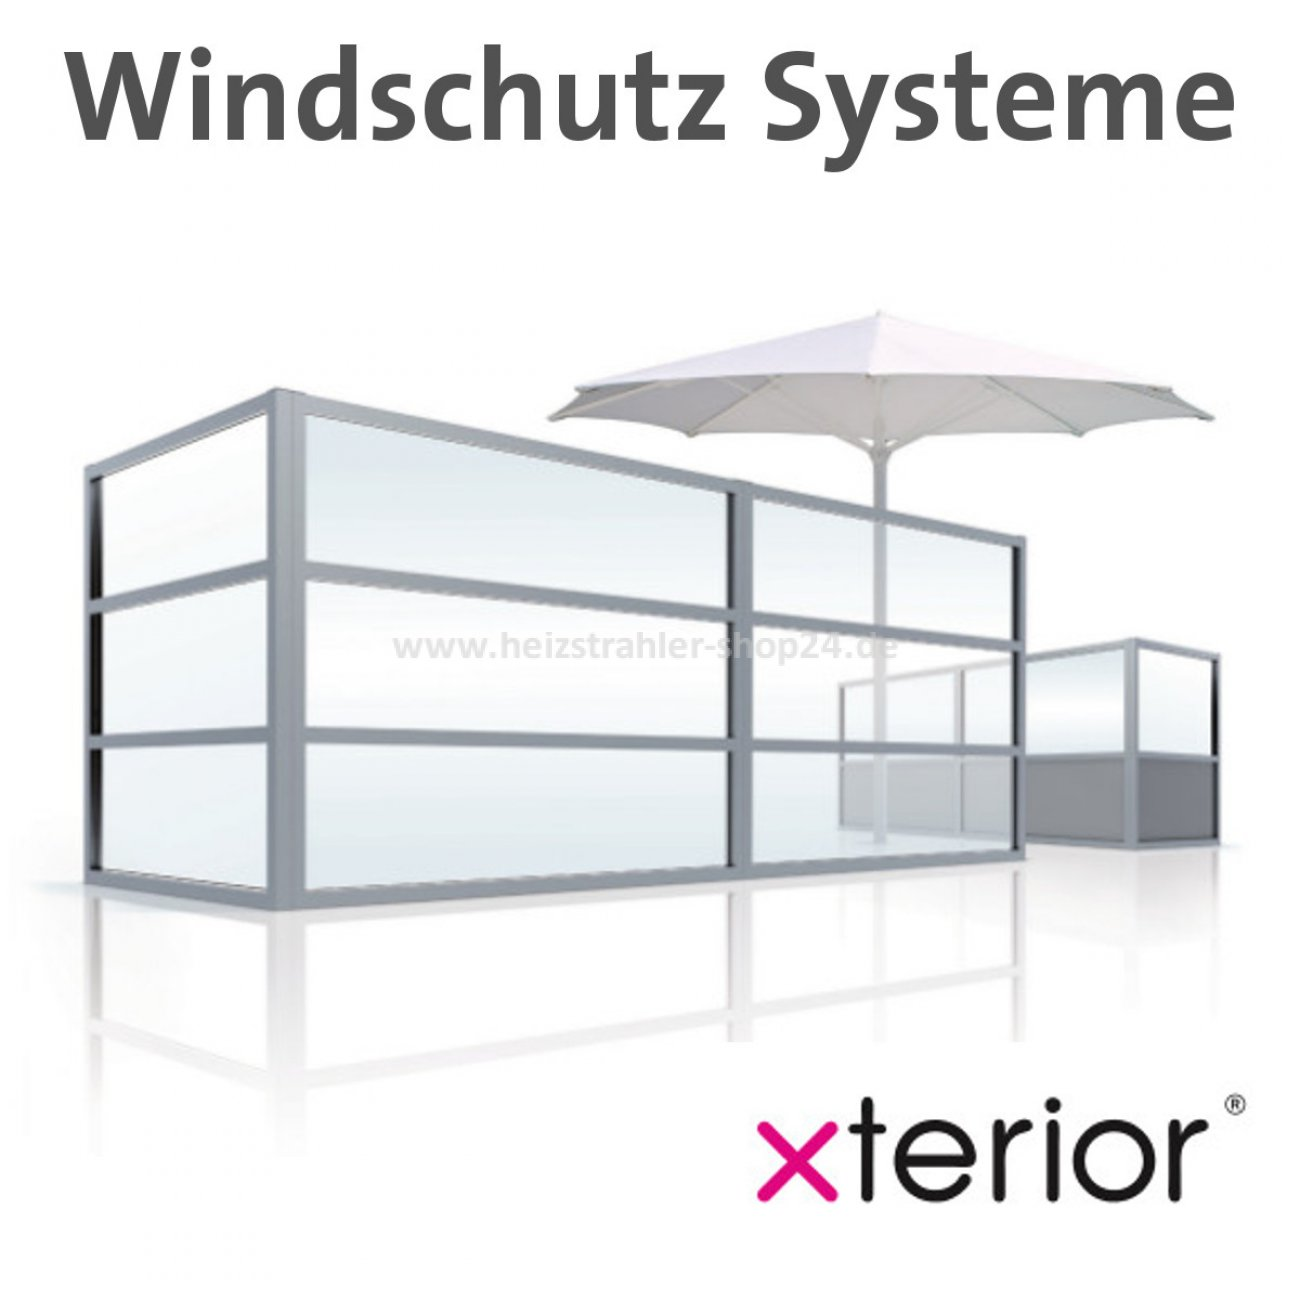 xterior windschutz f r die gastronomie terrasse. Black Bedroom Furniture Sets. Home Design Ideas